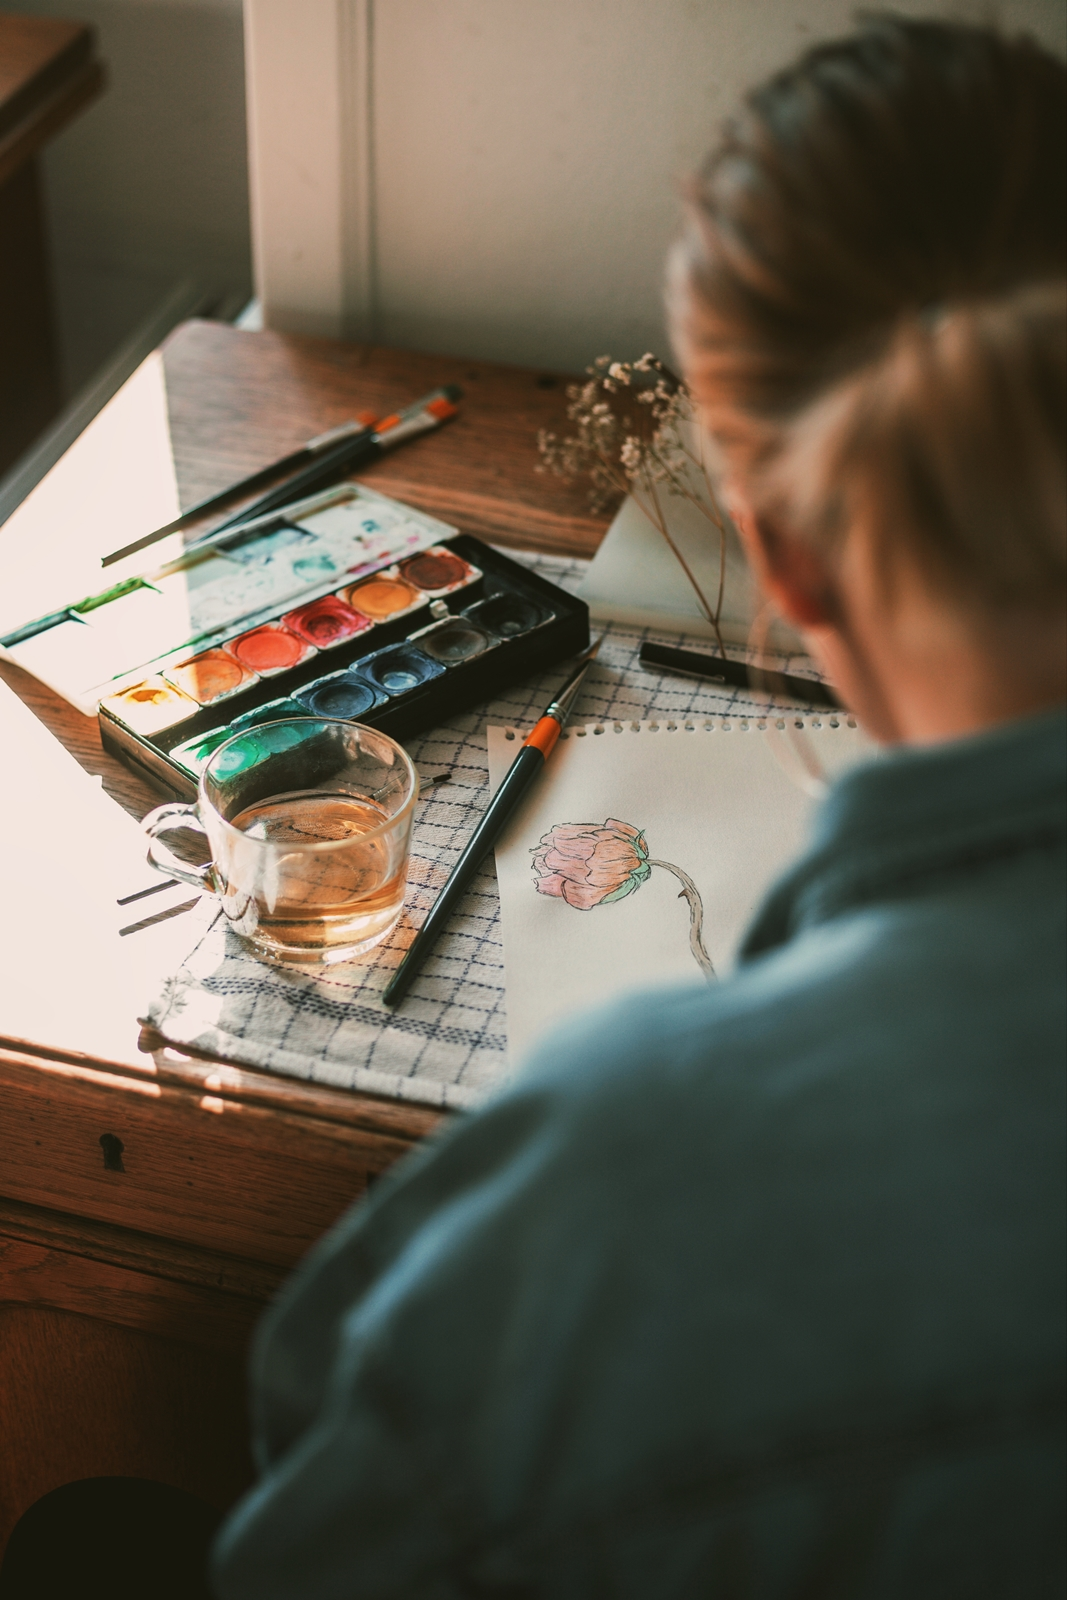 watercolor palette, glass of cider, me painting